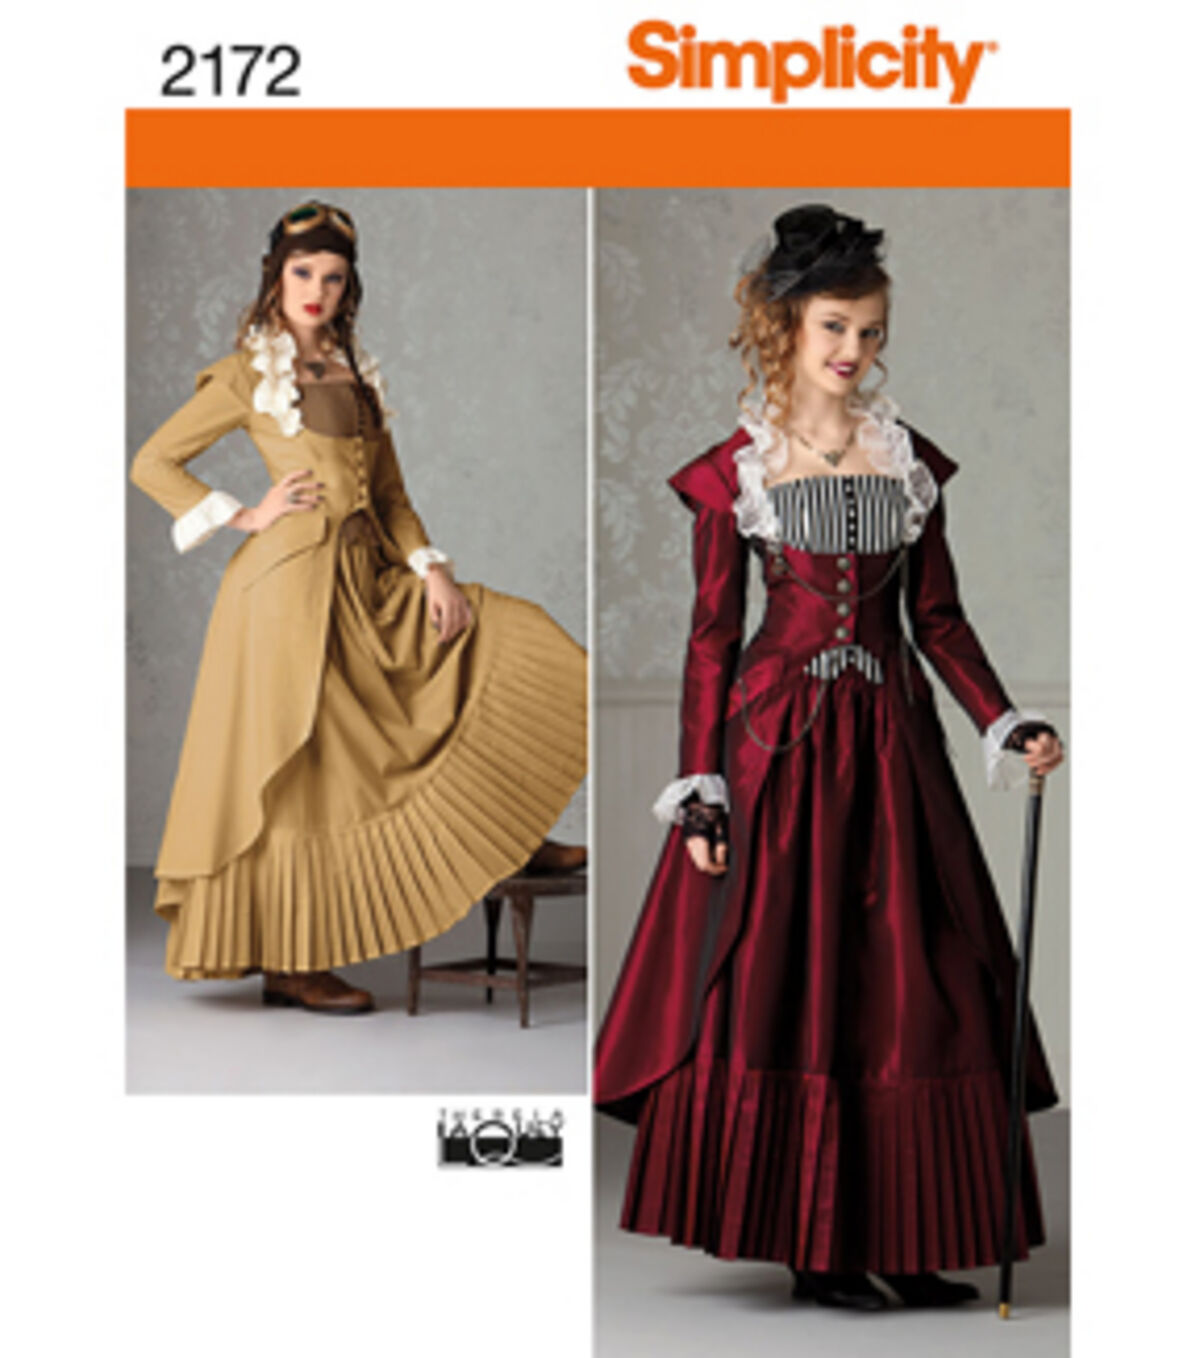 Steampunk Sewing Patterns- Dresses, Coats, Plus Sizes, Men's Patterns Simplicity - Pattern 2172 - Misses Steampunk Costume - Sizes 14-16-18-20 - Costumes - At JOANN Fabrics  Crafts $4.49 AT vintagedancer.com